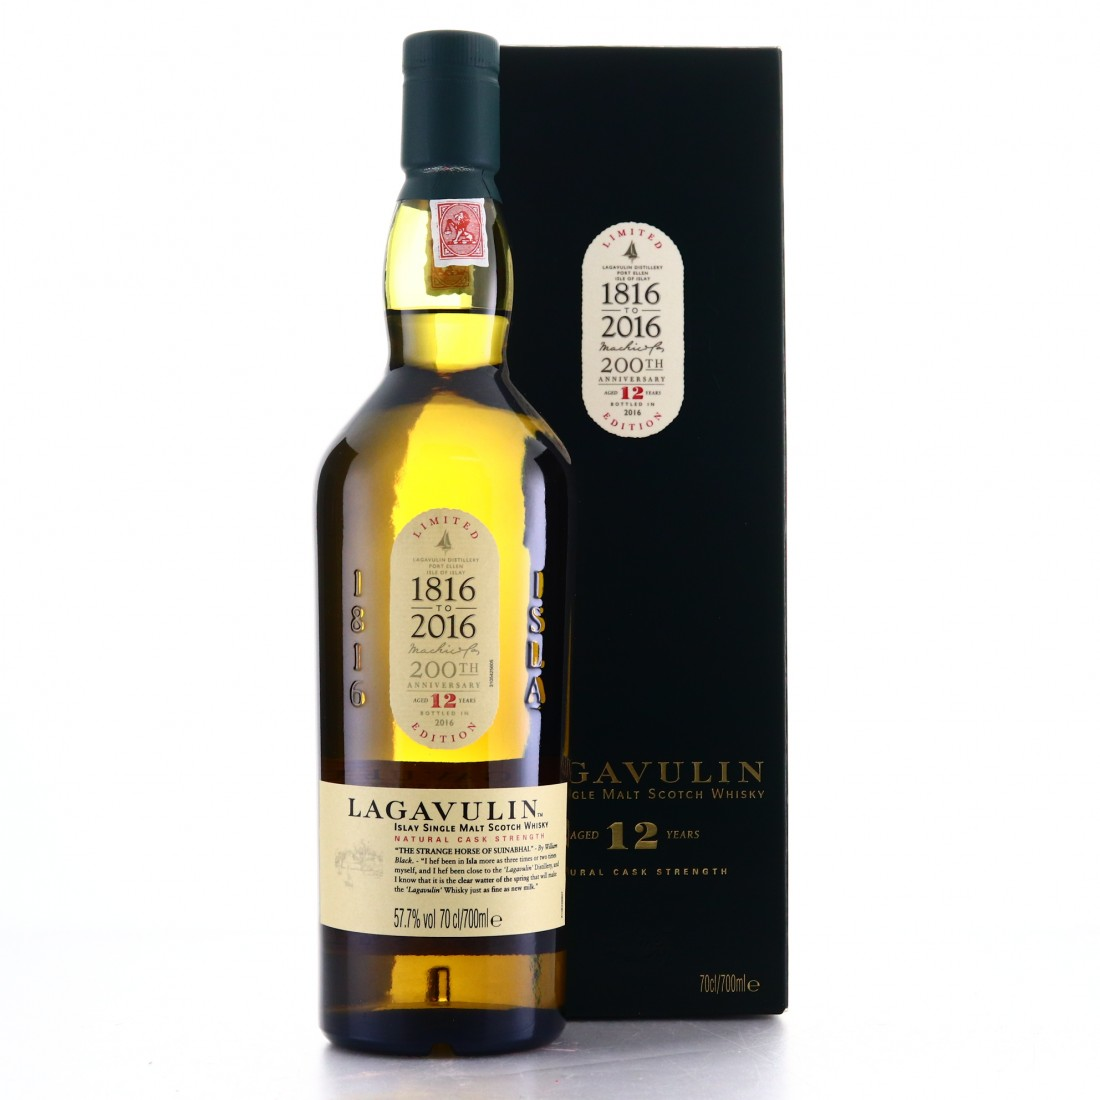 Lagavulin 12 Year Old Cask Strength 2016 Release / Bicentenary Edition